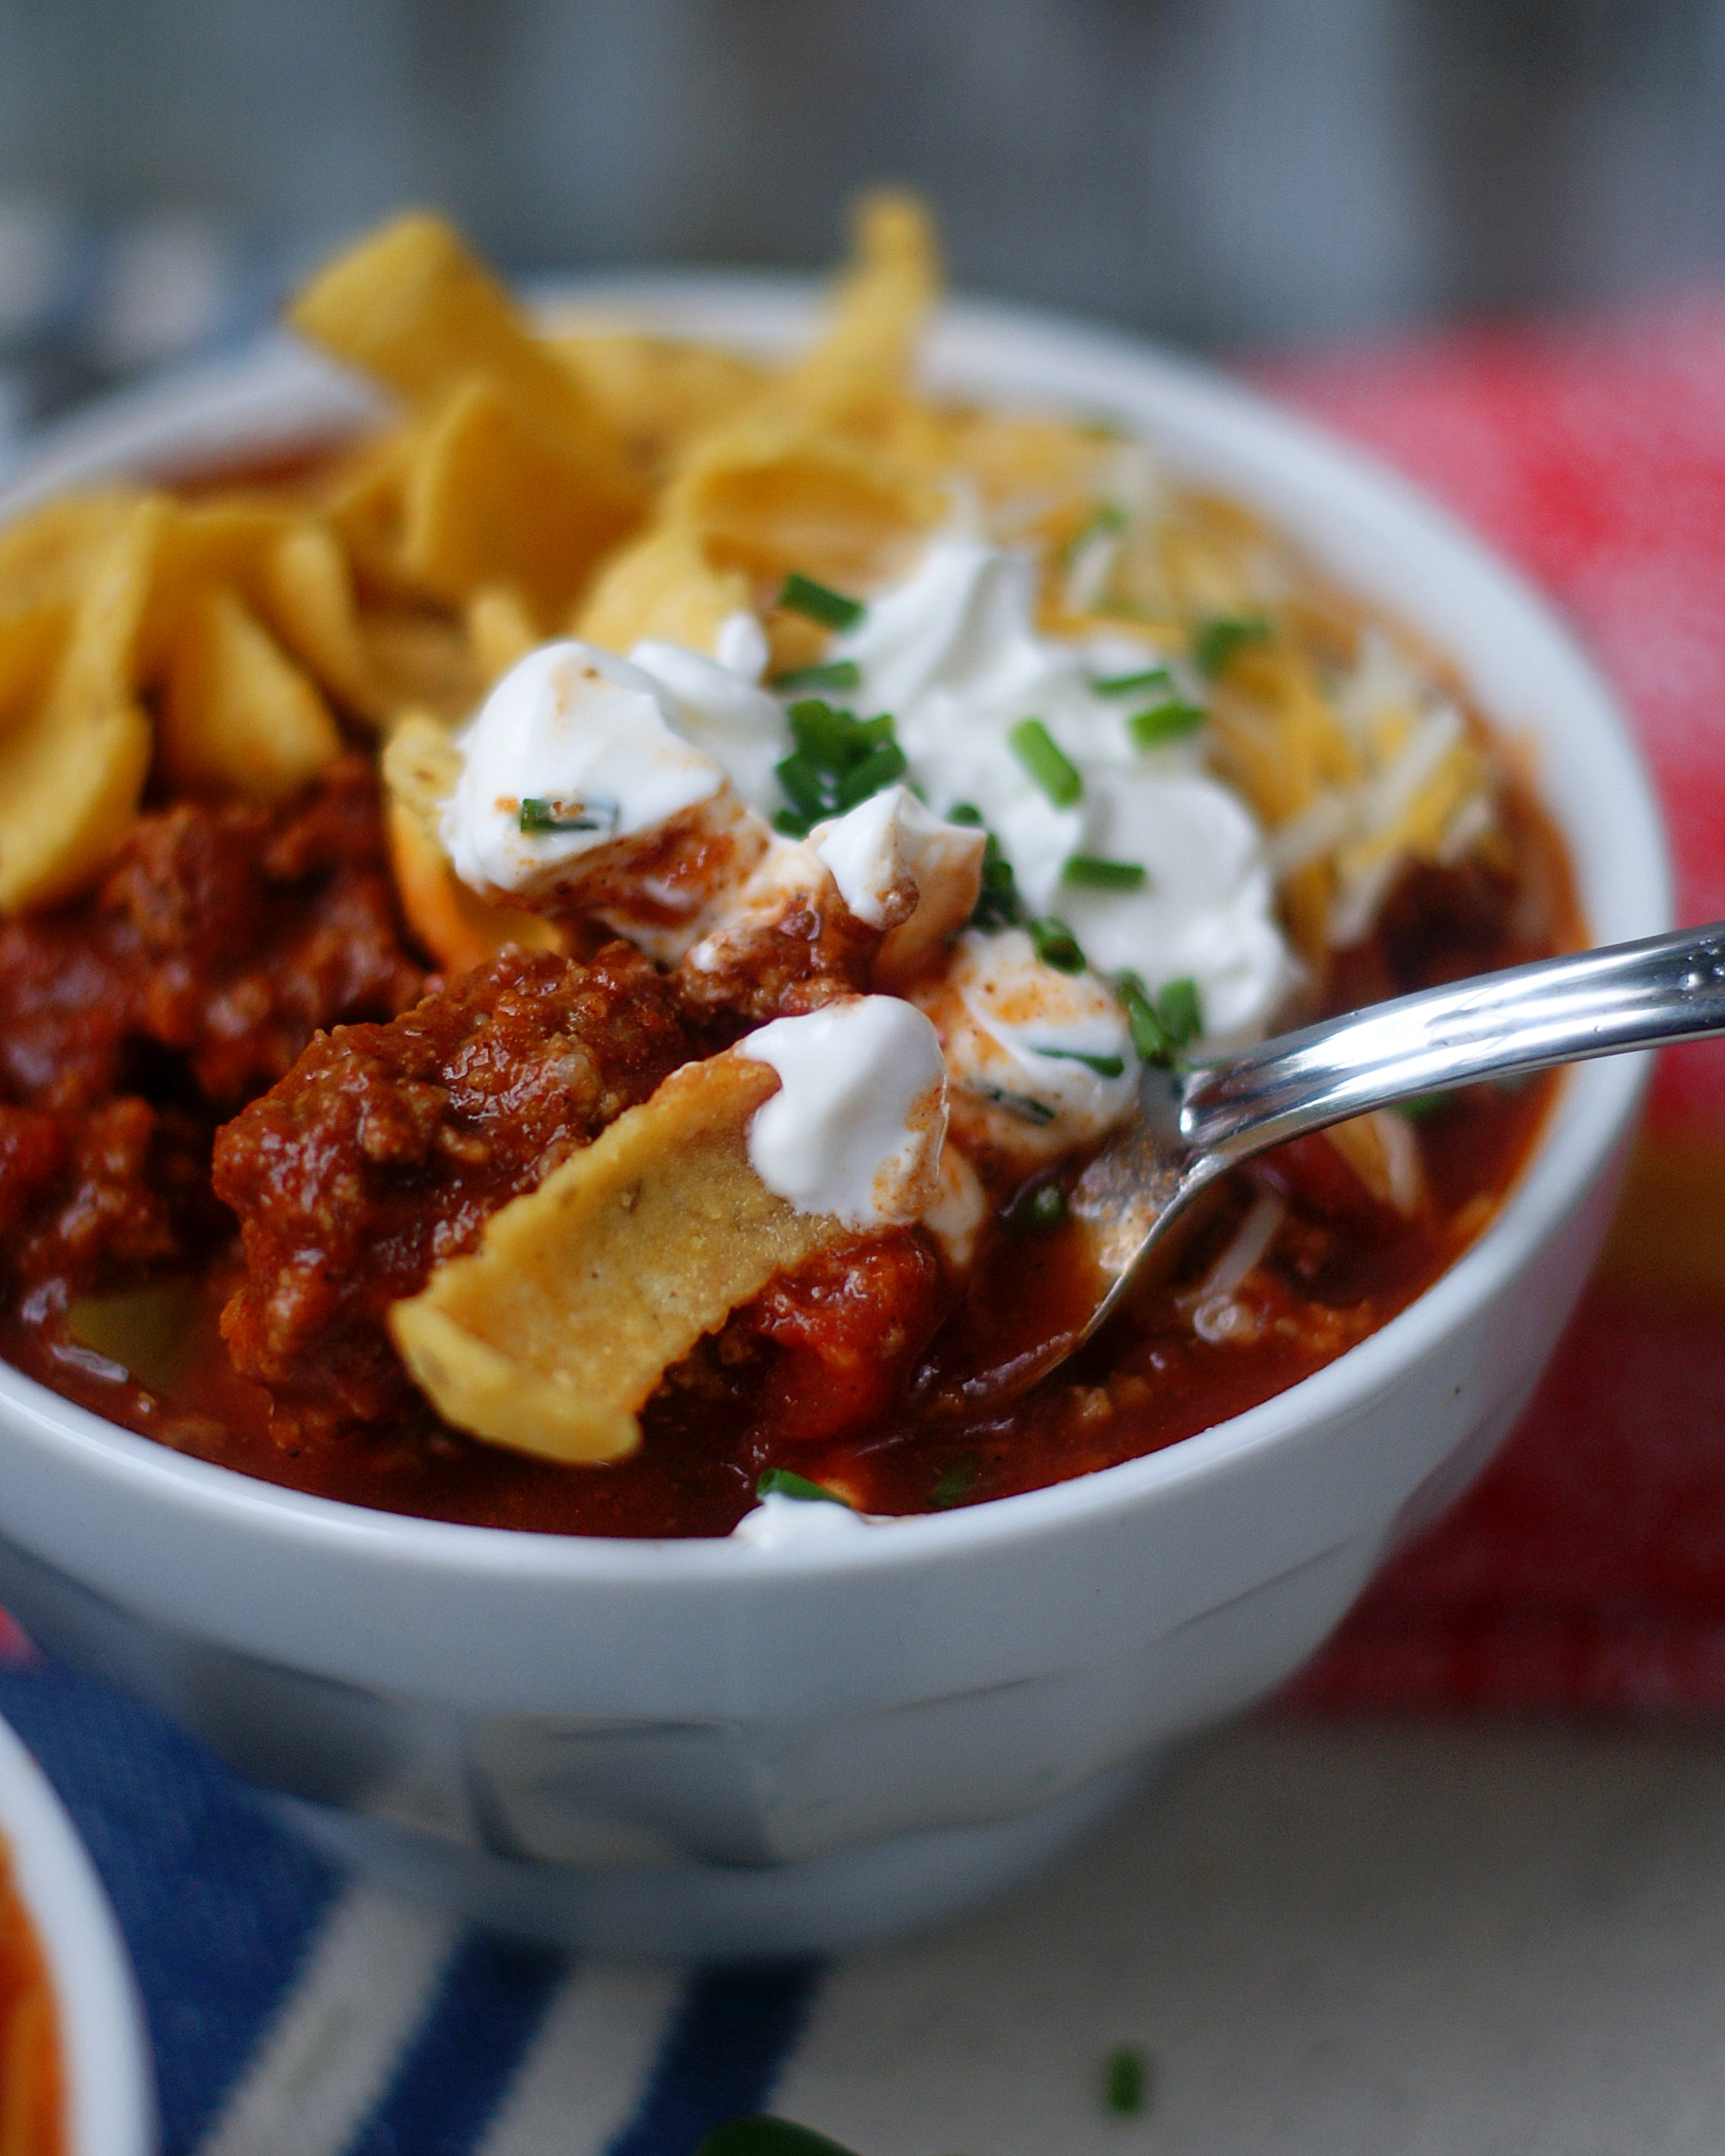 A spoonful of Texas Chili.